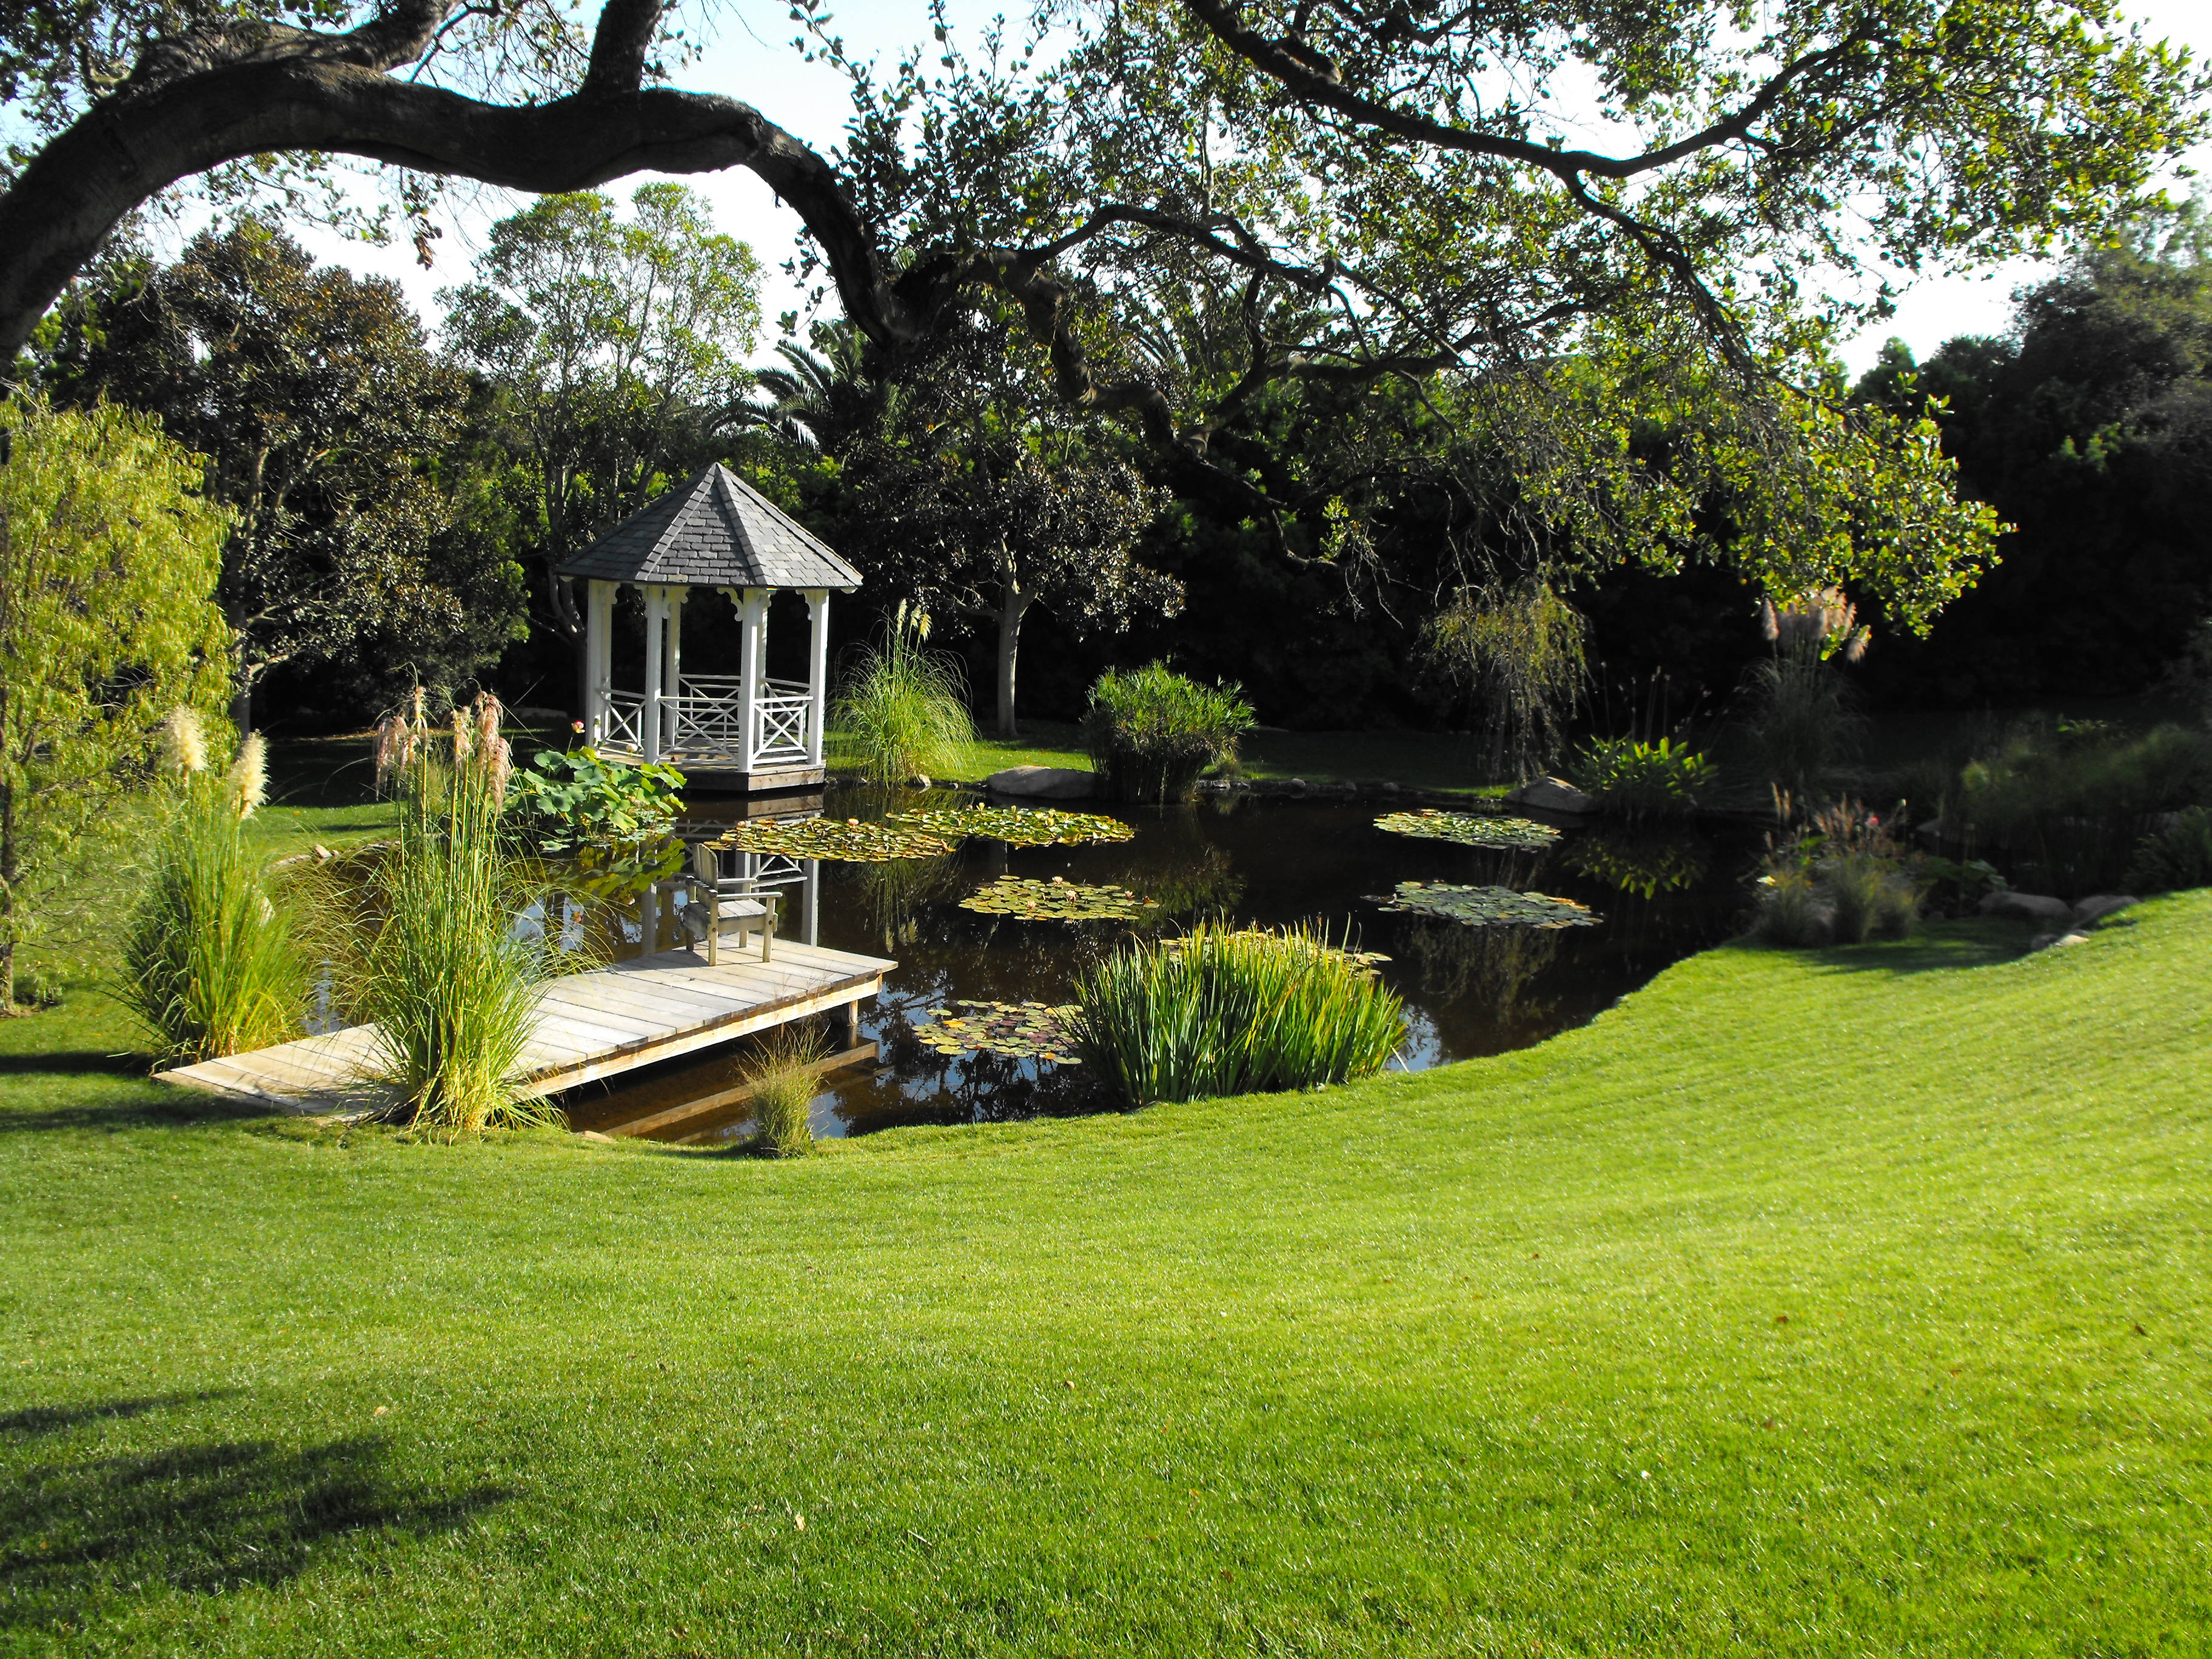 Garcia Rock And Water Design Blog on Small Pond Landscaping Ideas id=94138